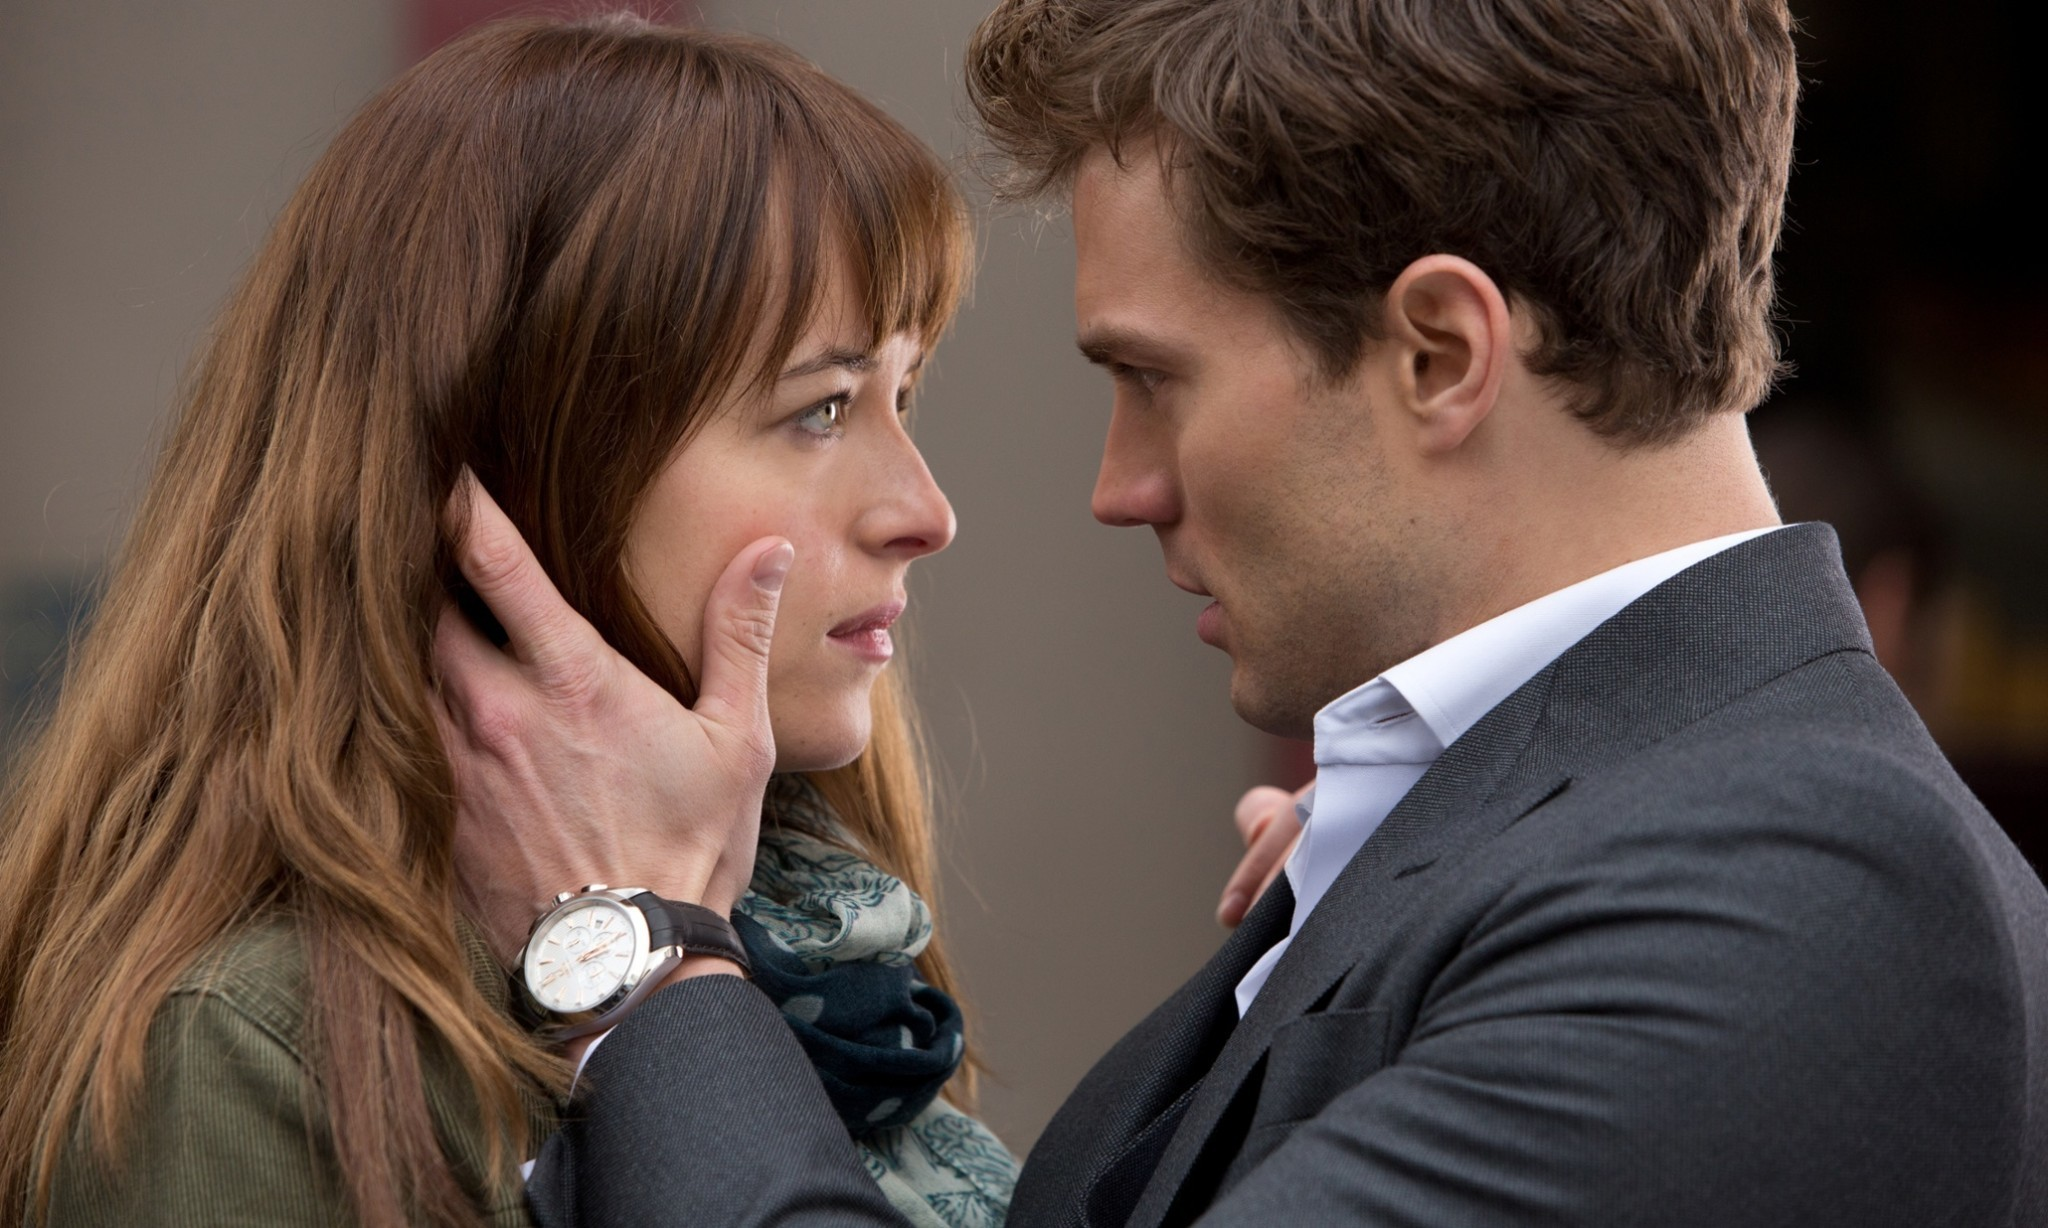 Record-breaking opening weekend for Fifty Shades of Grey film